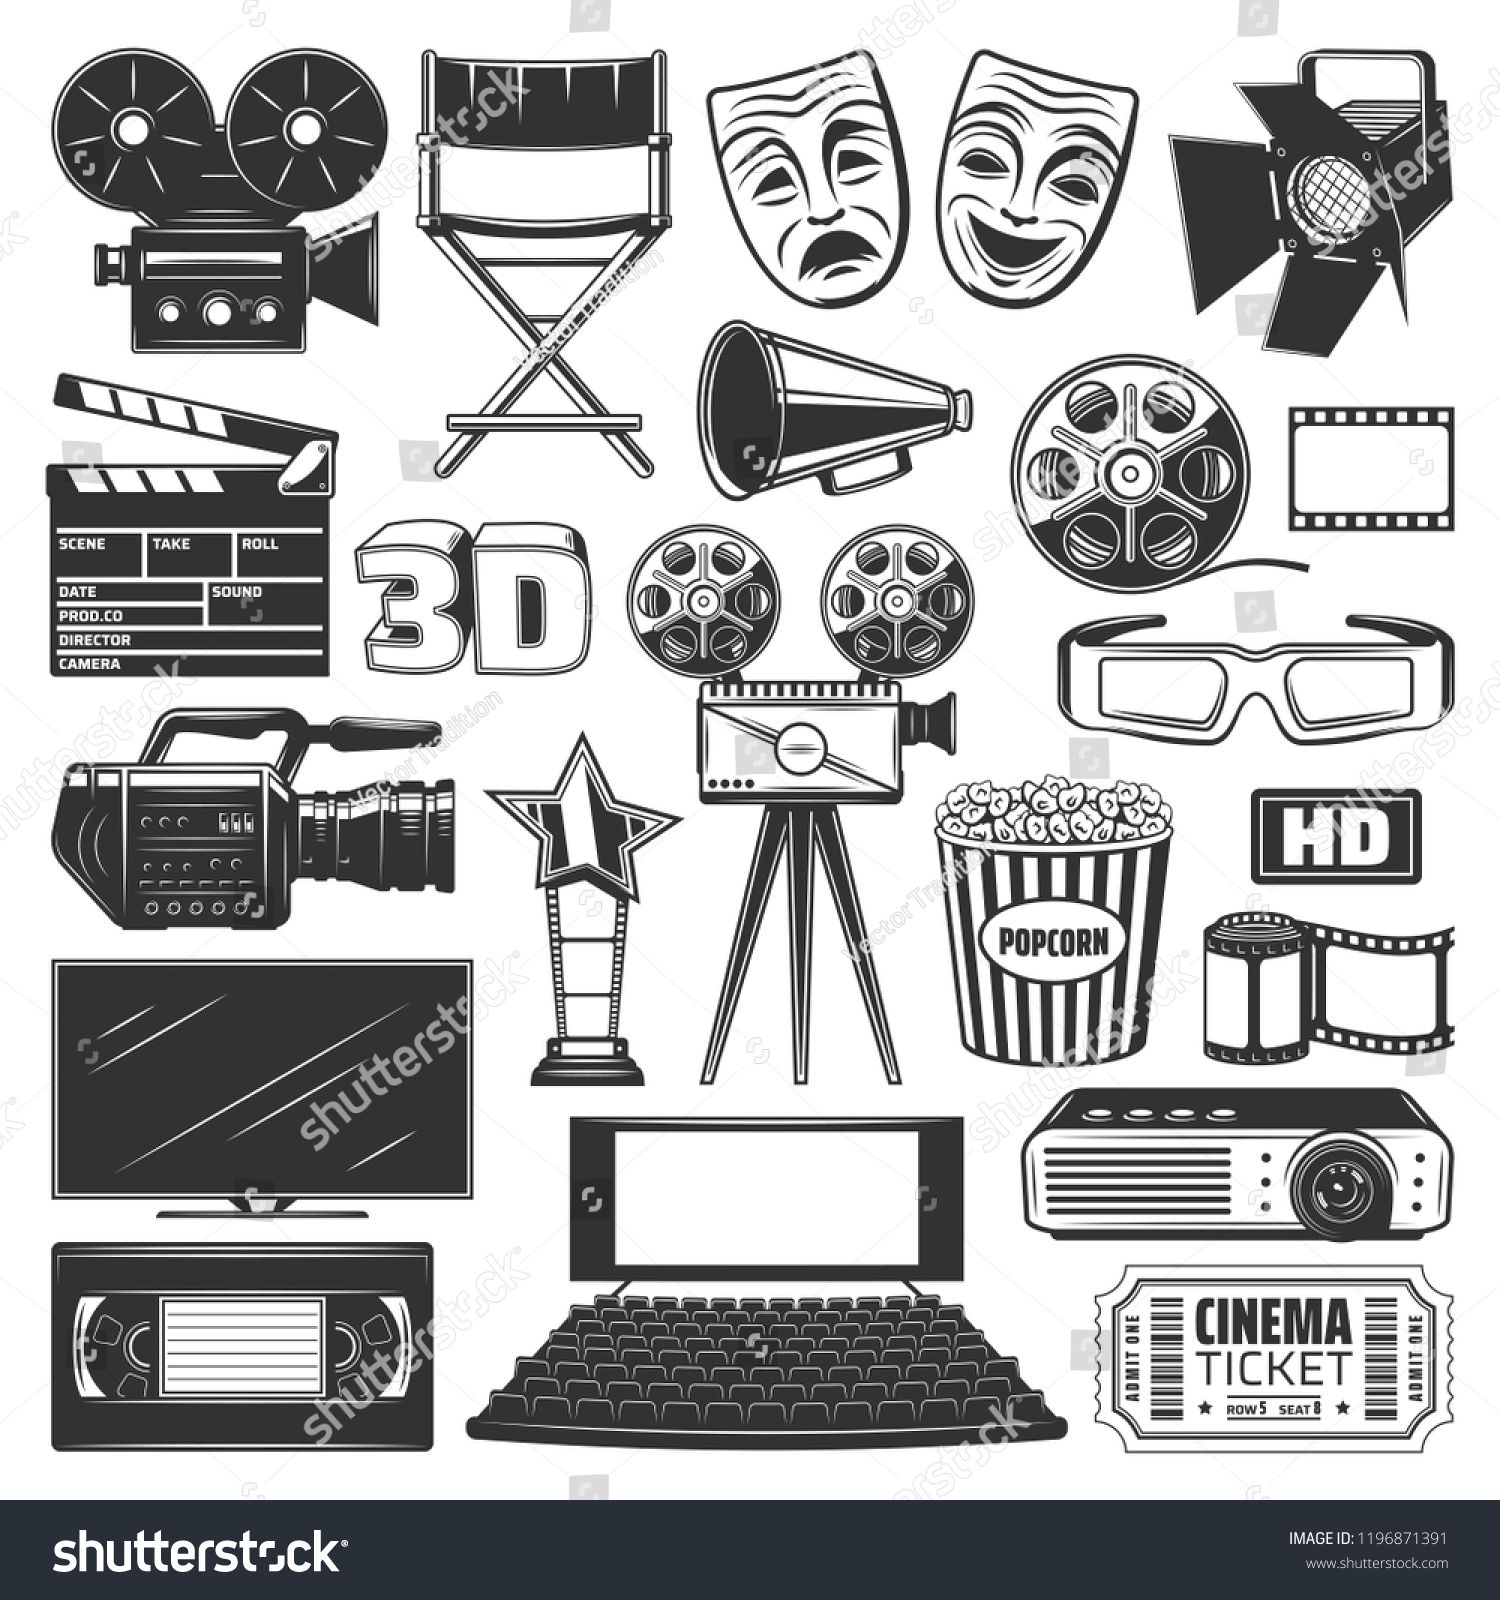 Cinema Or Movie Production Devices And Equipment Icons And Signs Camera And Directors Chair Projector And Clapperboard Film Cinema Cinema Ticket Film Reels